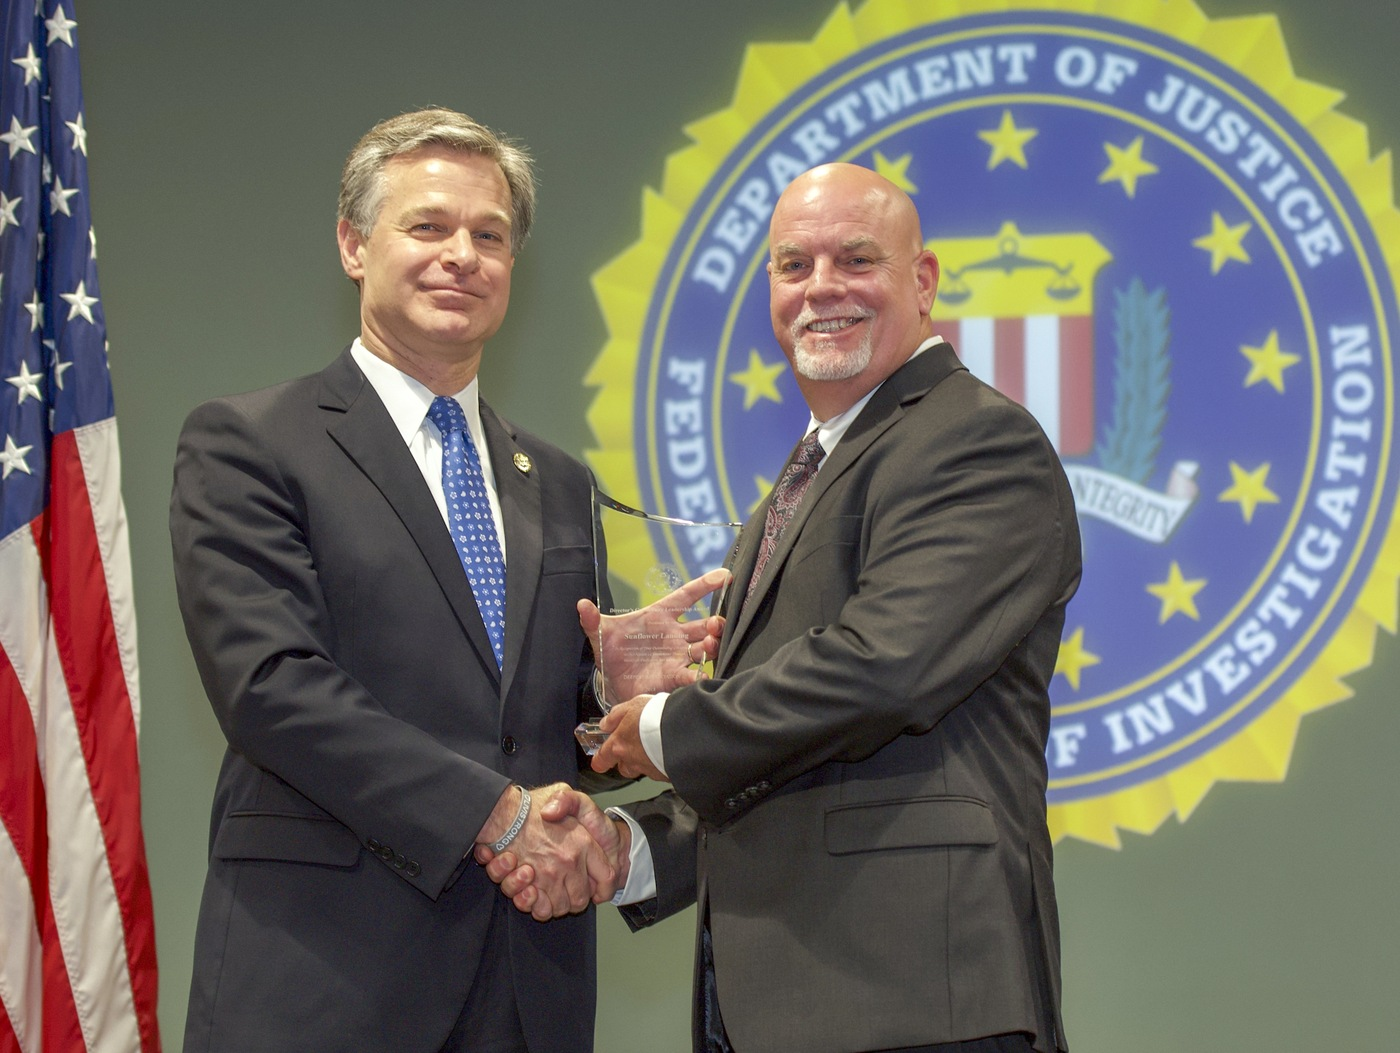 FBI Director Christopher Wray presents Jackson Division recipient Sunflower Landing (represented by Shane Garrard) with the Director's Community Leadership Award (DCLA) at a ceremony at FBI Headquarters on May 3, 2019.